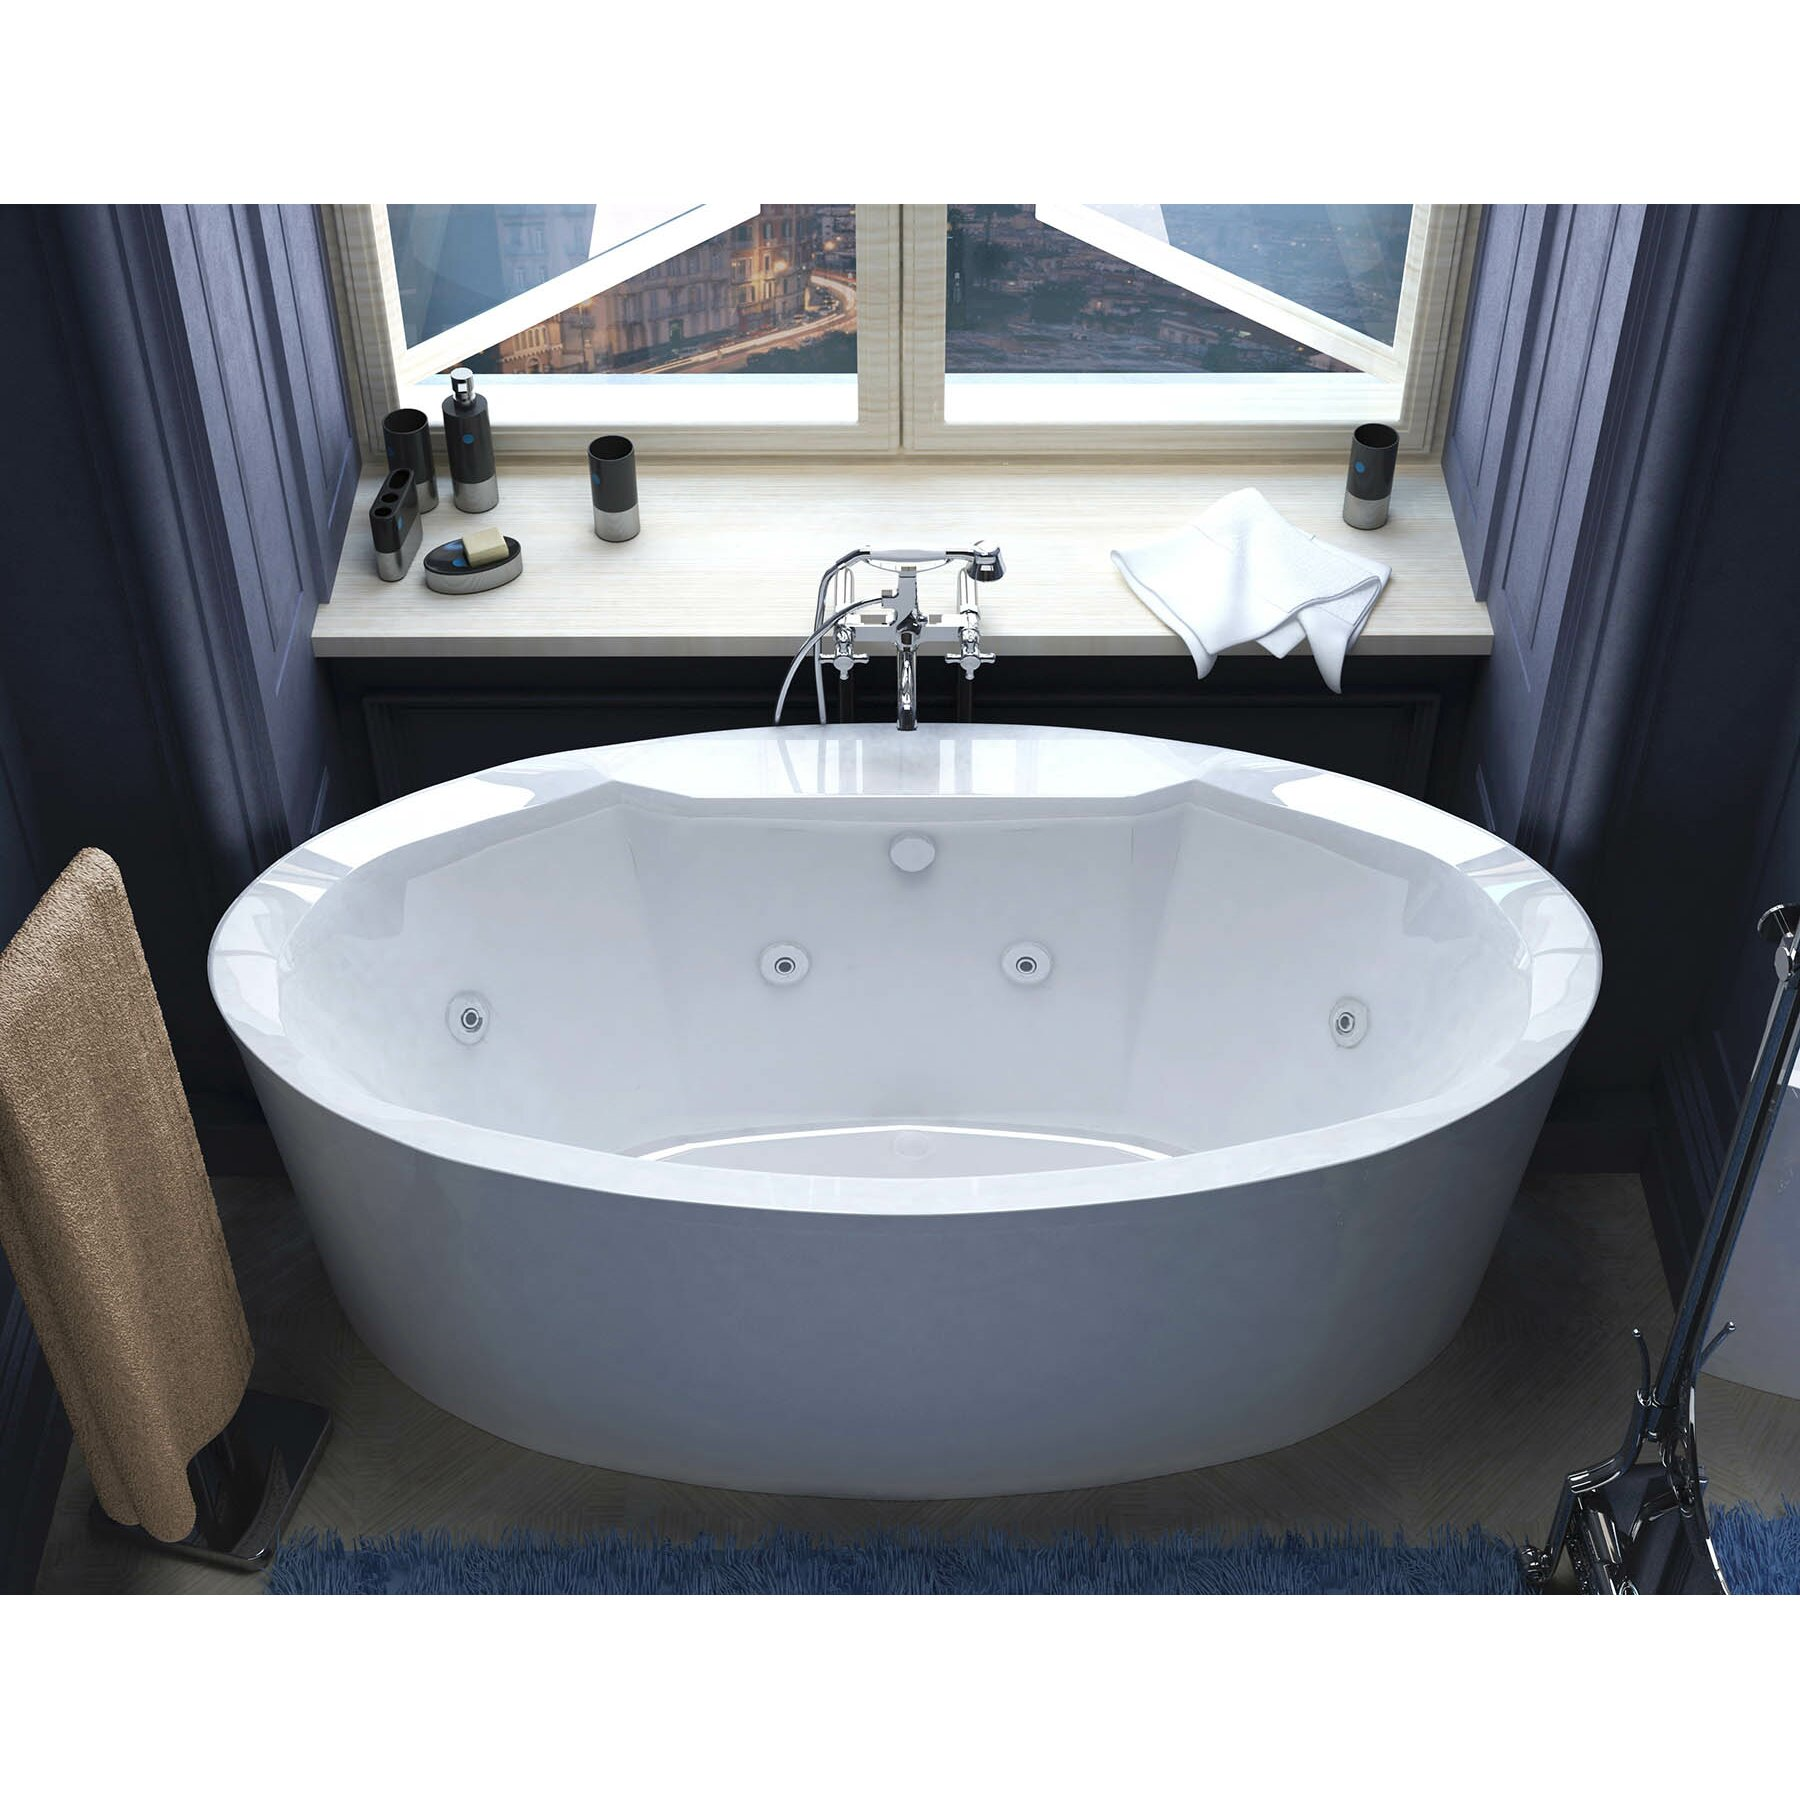 Spa Escapes Salina 6718quot x 3343quot Oval Freestanding  : Spa Escapes Salina 6718 x 3343 Oval Freestanding Whirlpool Jetted Bathtub with Center Drain from www.wayfair.com size 1800 x 1800 jpeg 401kB